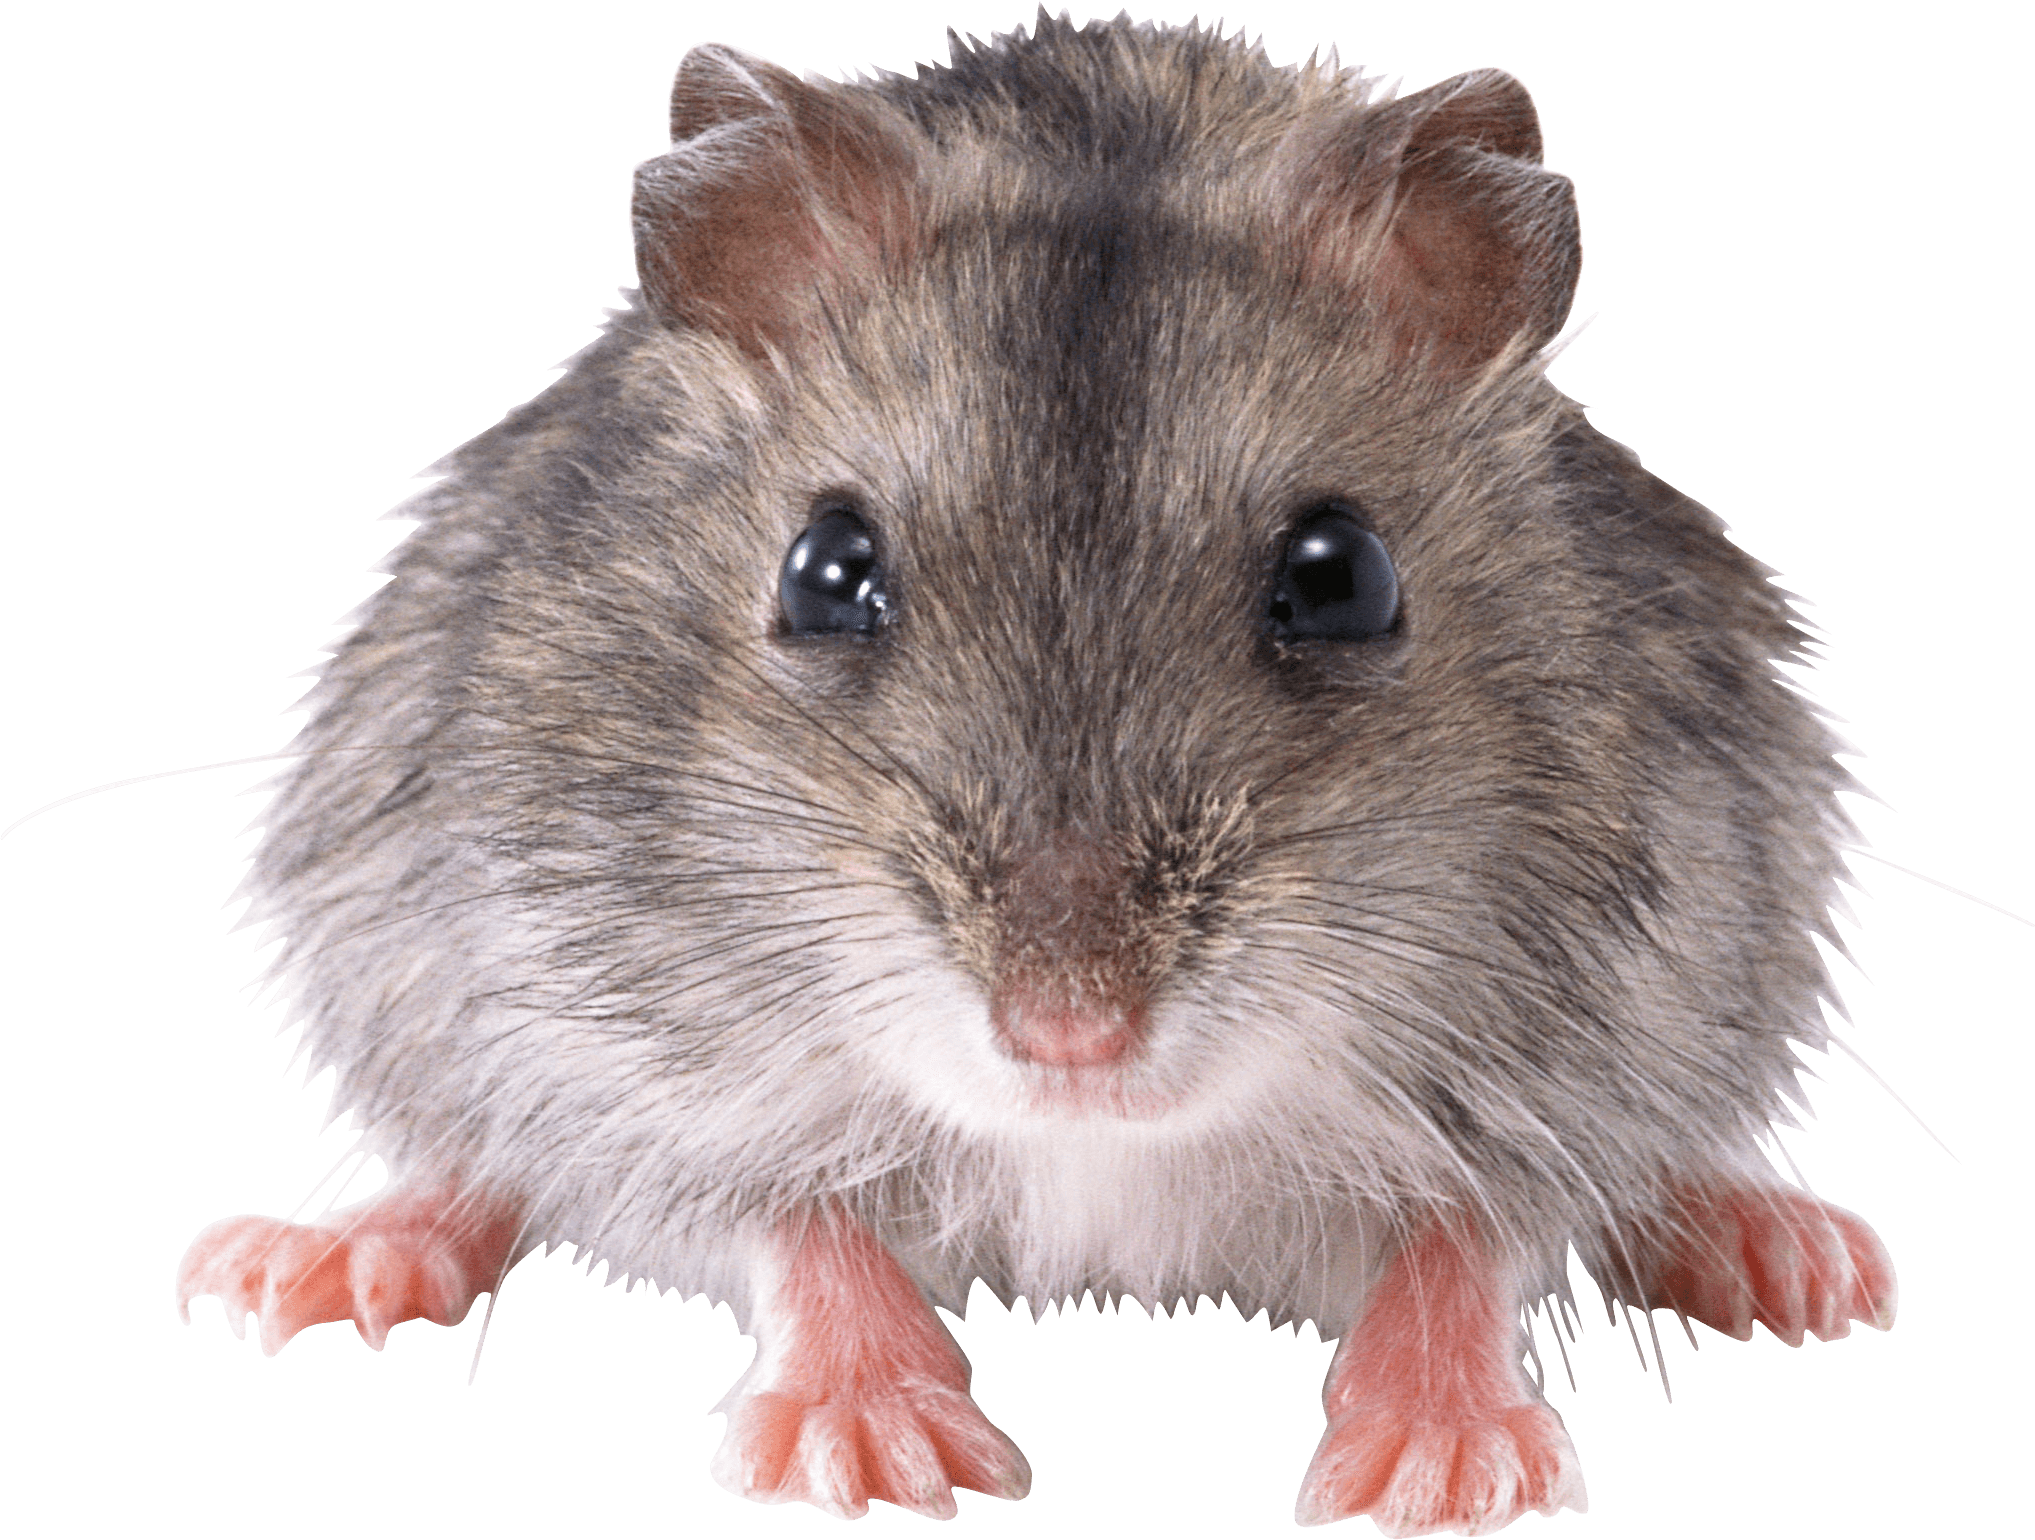 Mouse front transparent png. Hamster clipart cute hamster